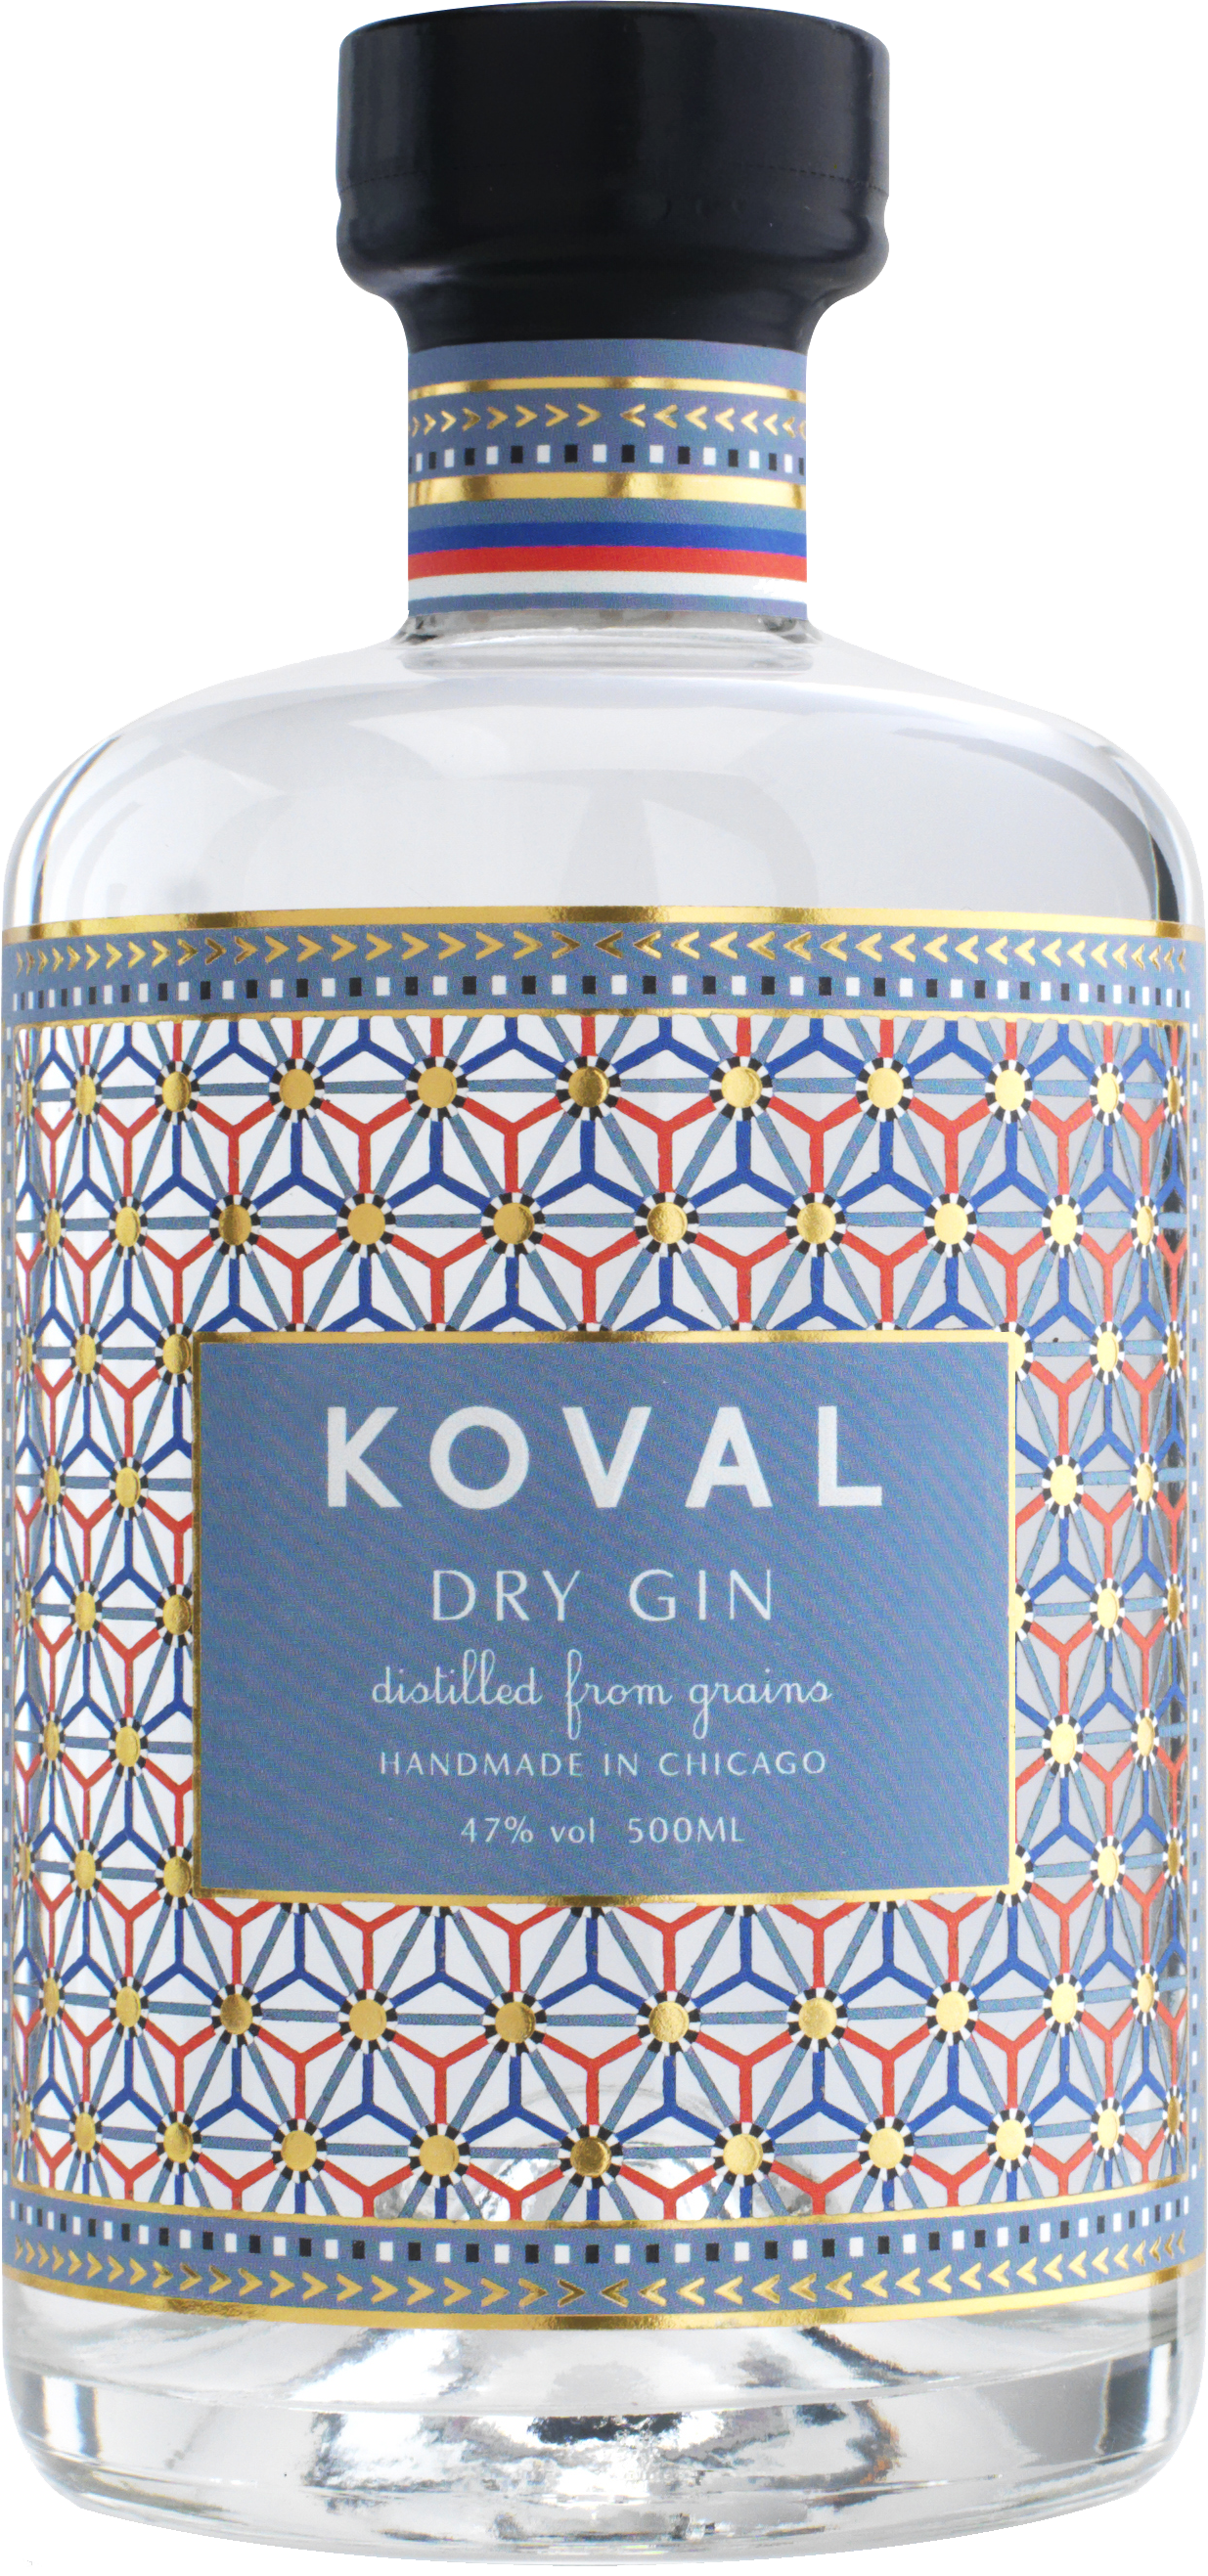 KOVAL - Dry Gin / 500mL